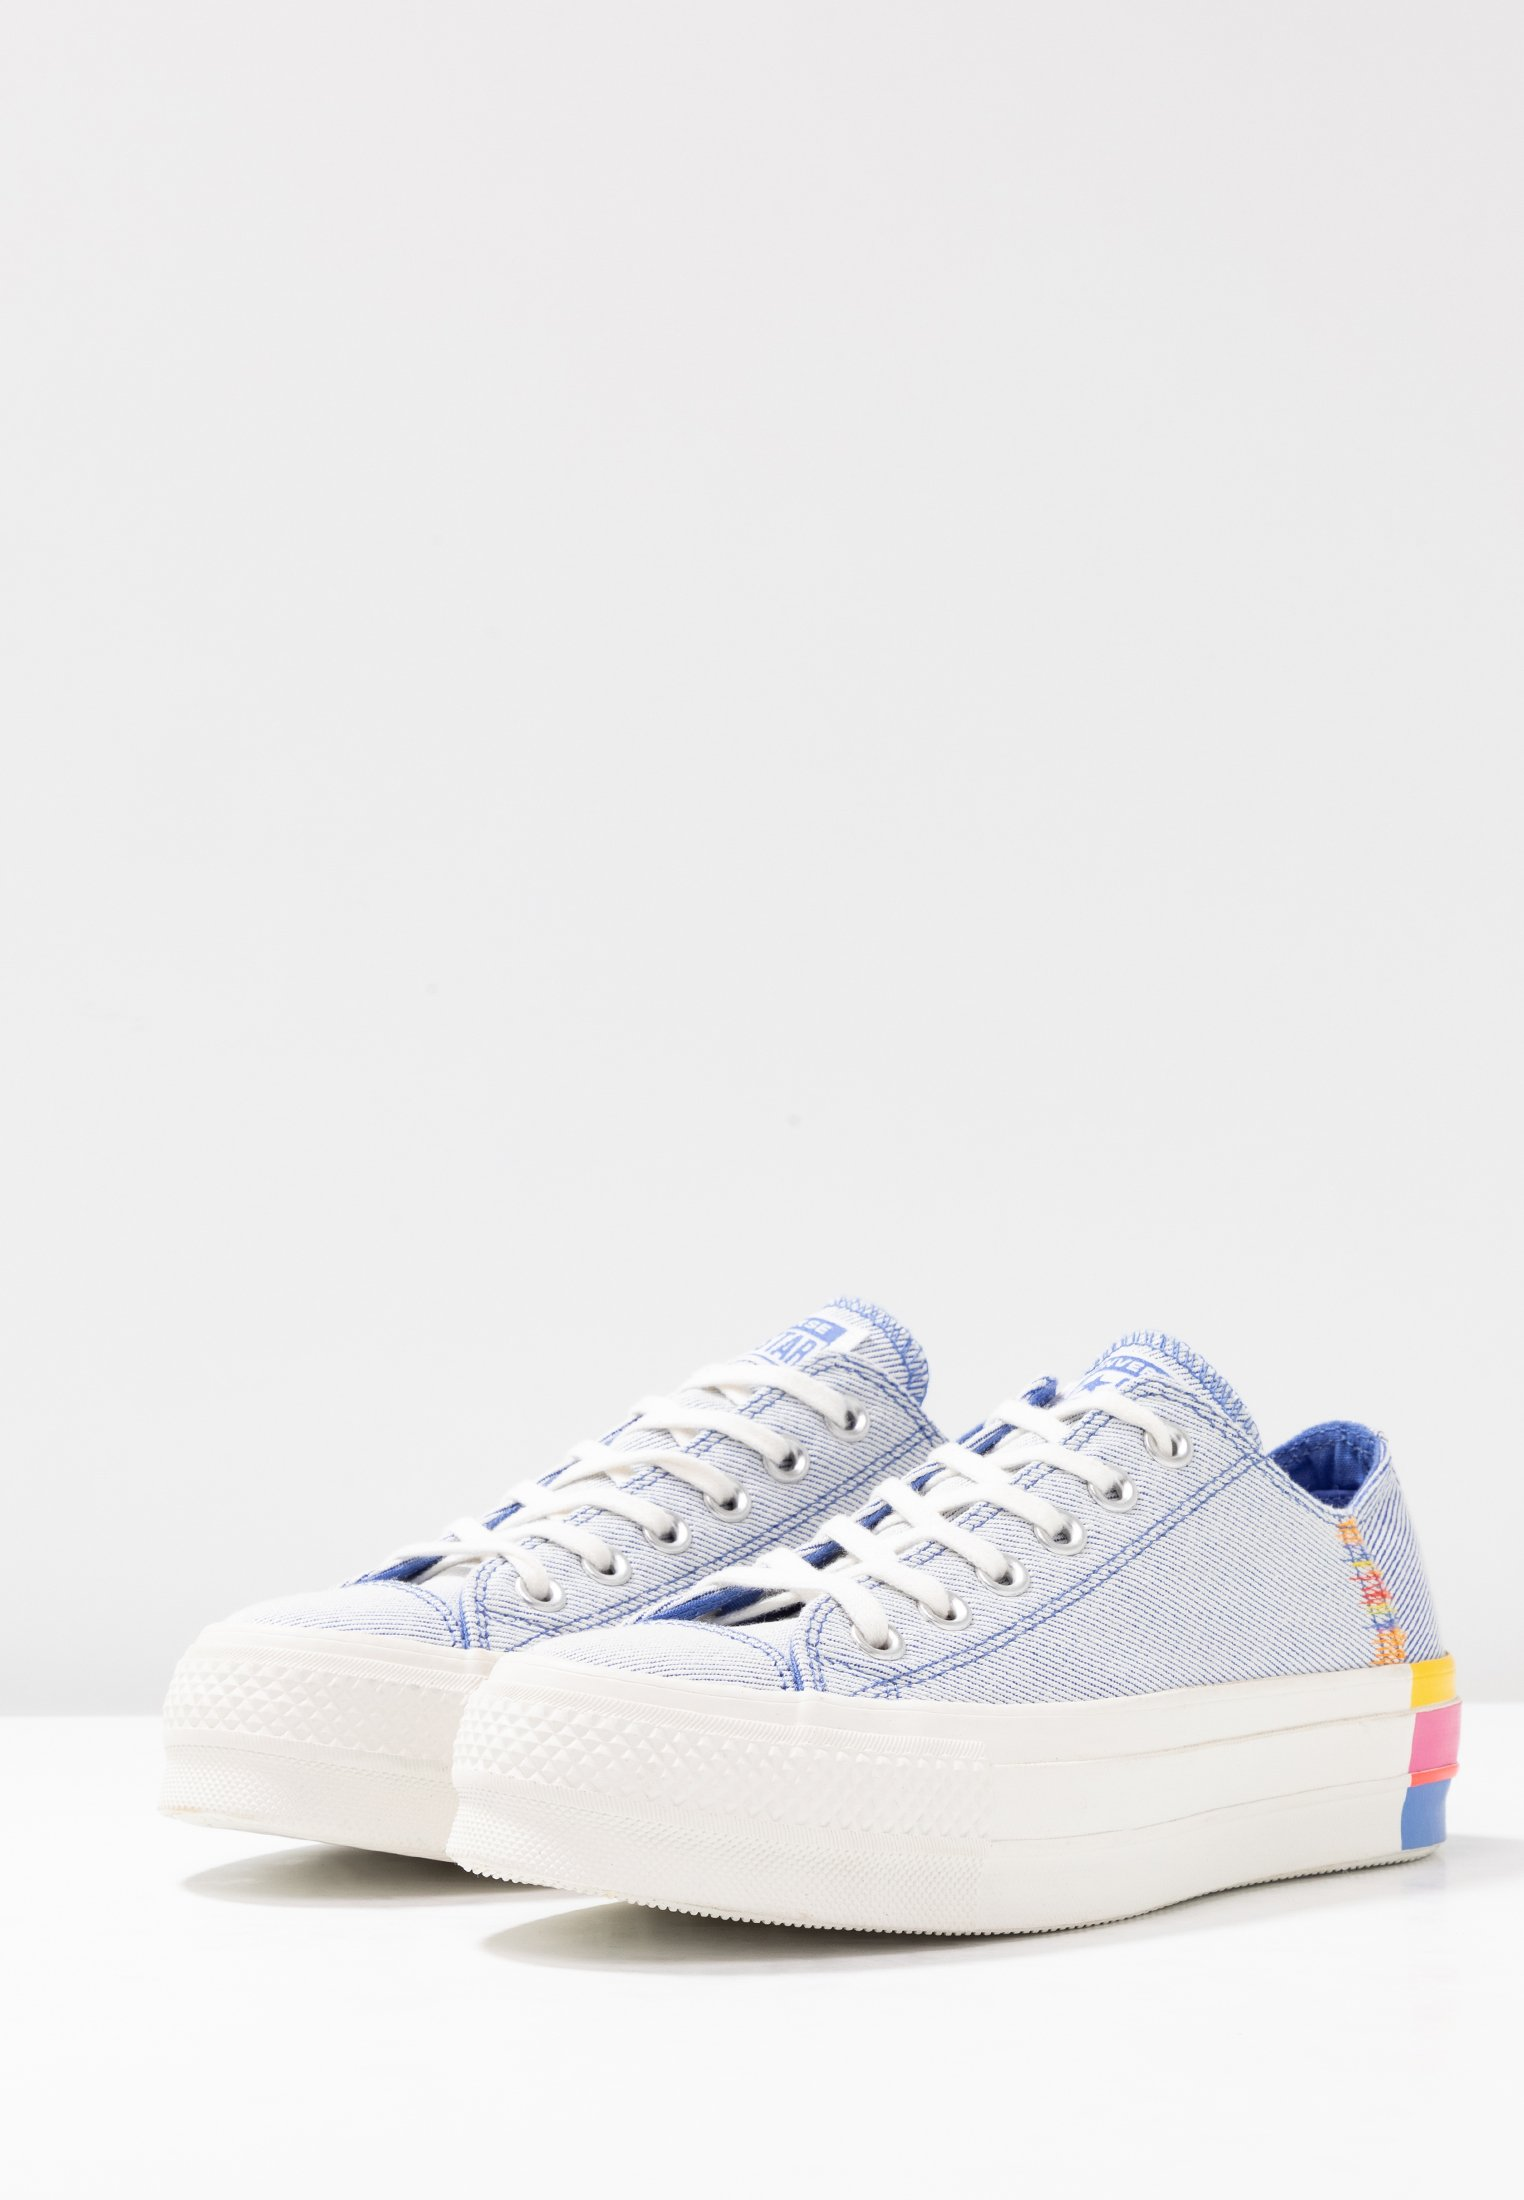 Lift Converse RainbowBaskets Basses Blue Chuck vintage White Taylor All Ozone Star 5ARjL34